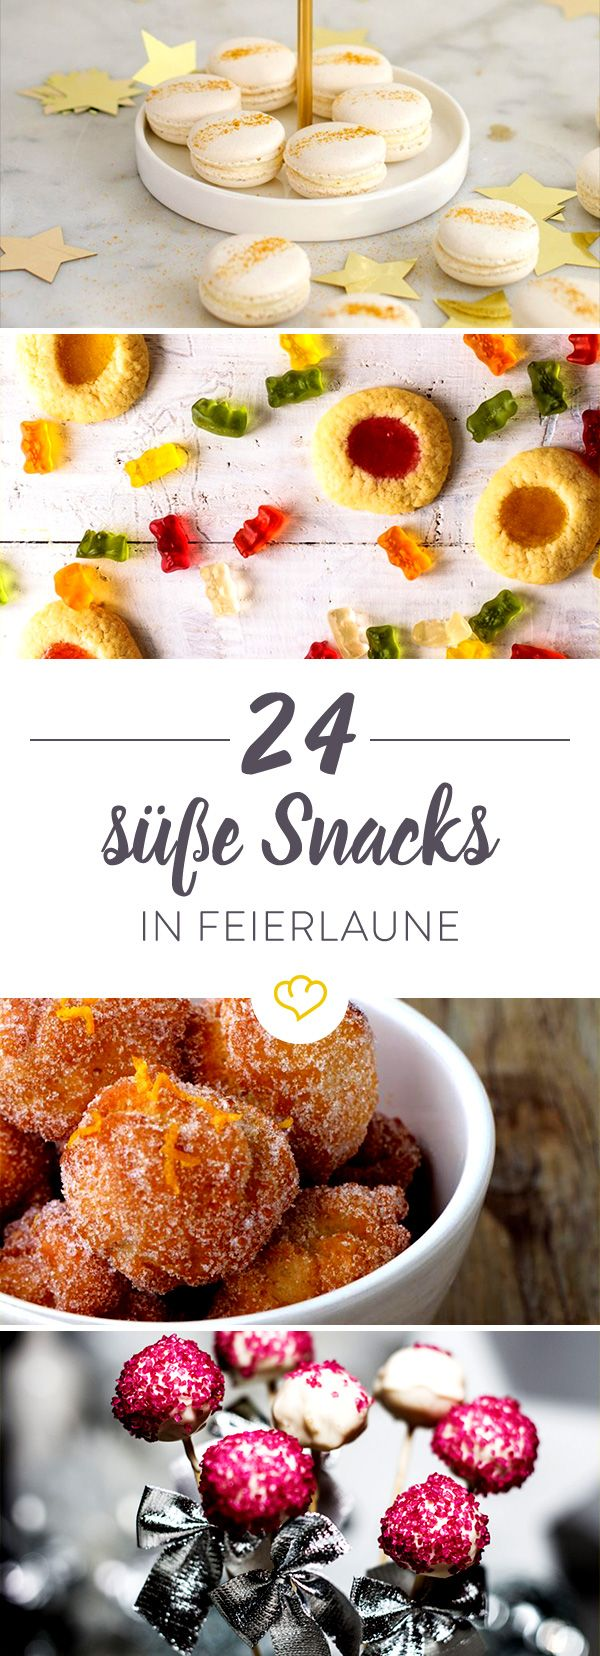 keine party ohne snacks 25 s e fingerfood ideen pinterest keine sorge f r dich und snacks. Black Bedroom Furniture Sets. Home Design Ideas